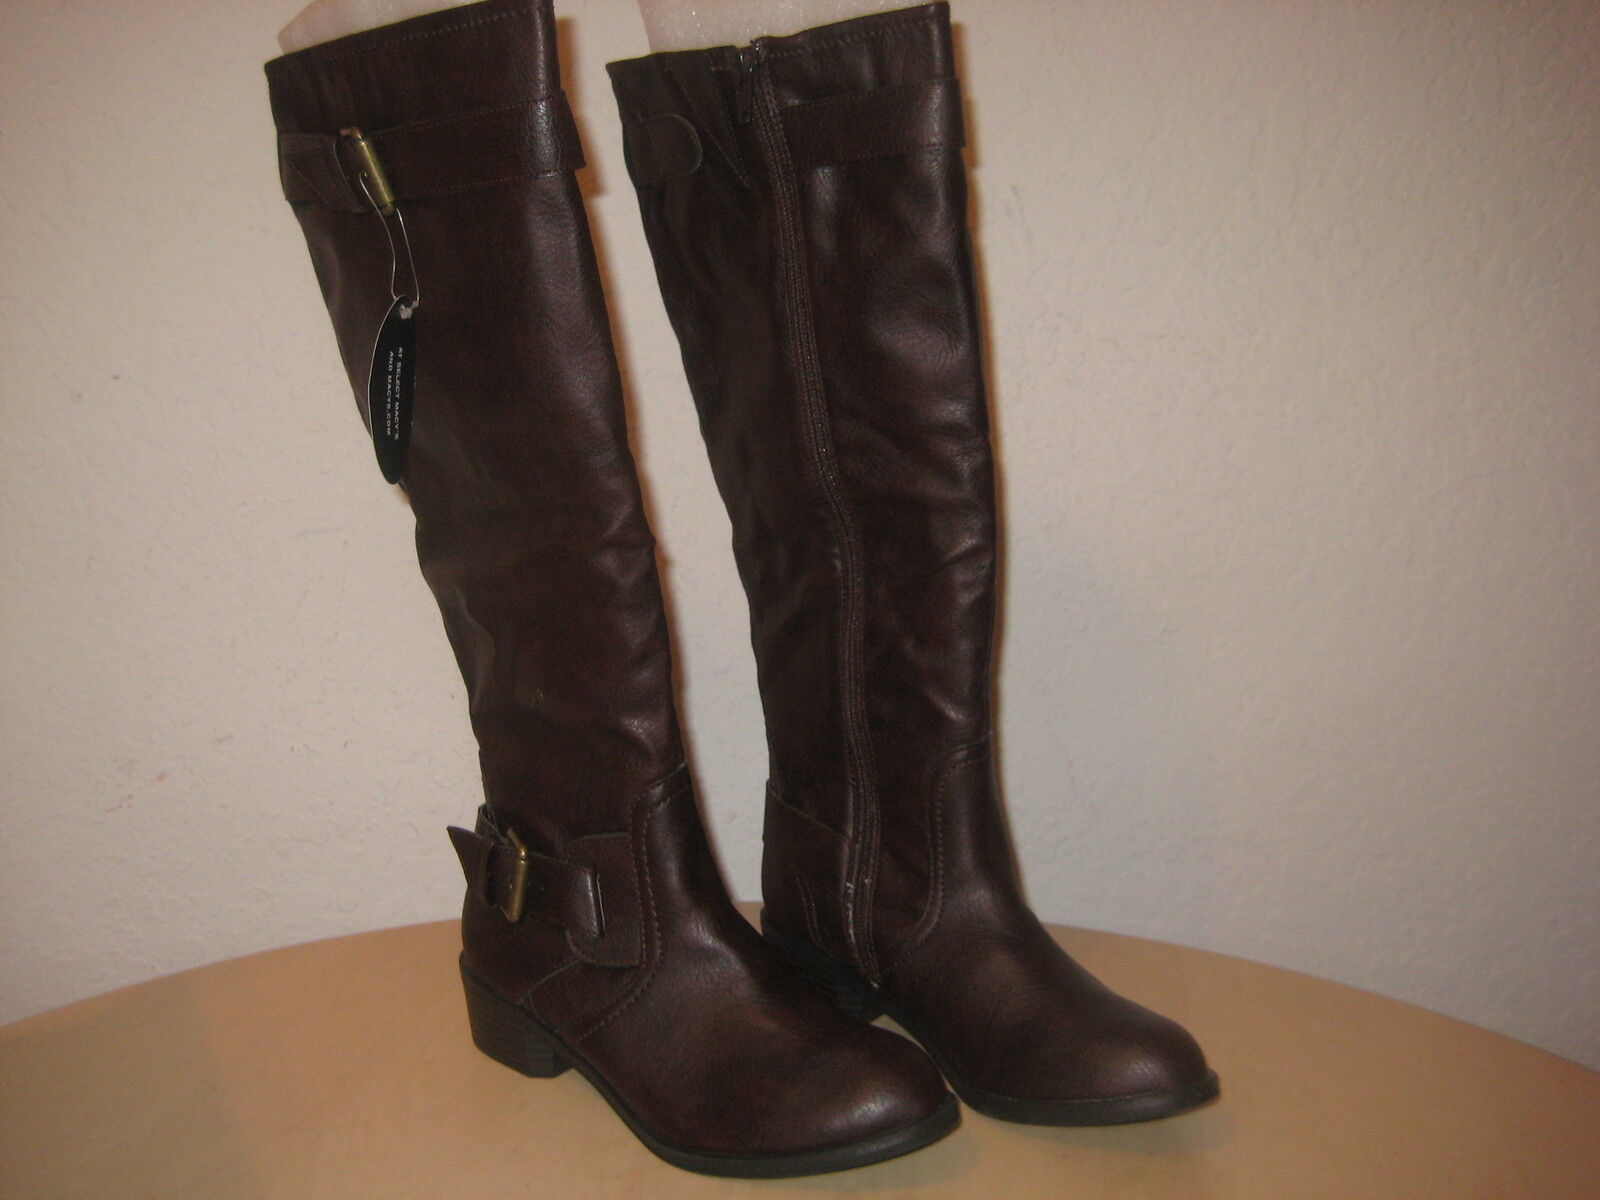 Style & Co shoes 6 M New Womens Ryder Brown Knee High Fashion Boots NWOB